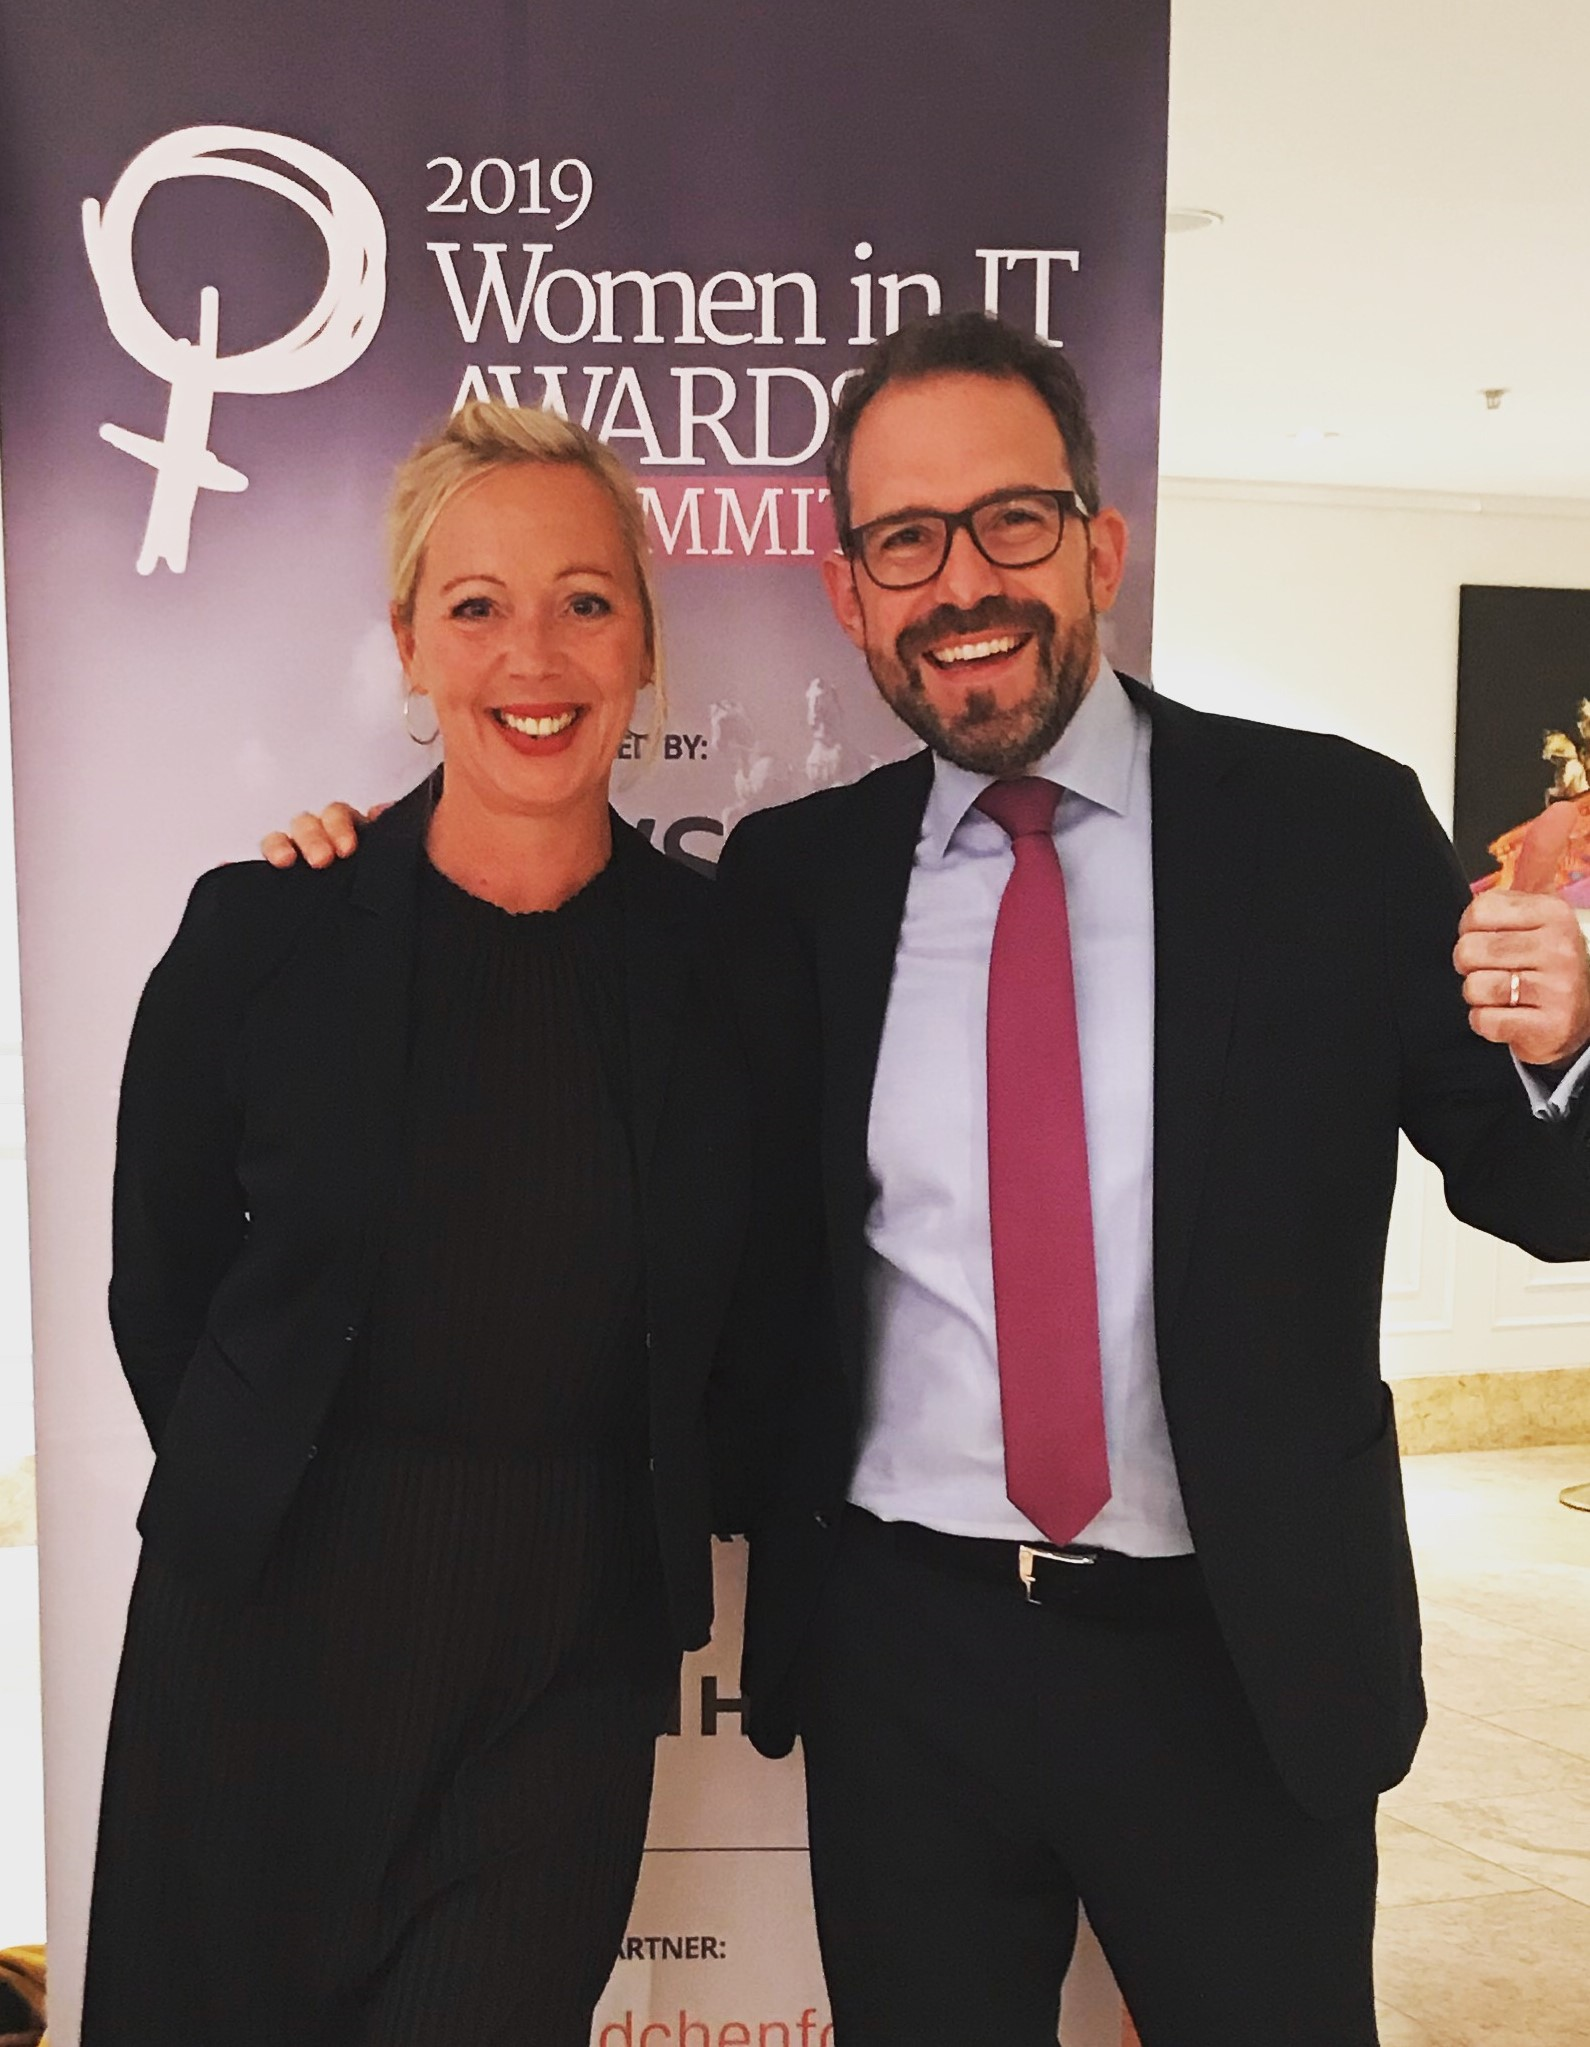 Datavard als Employer of the Year beim Women in IT Award ausgezeichnet